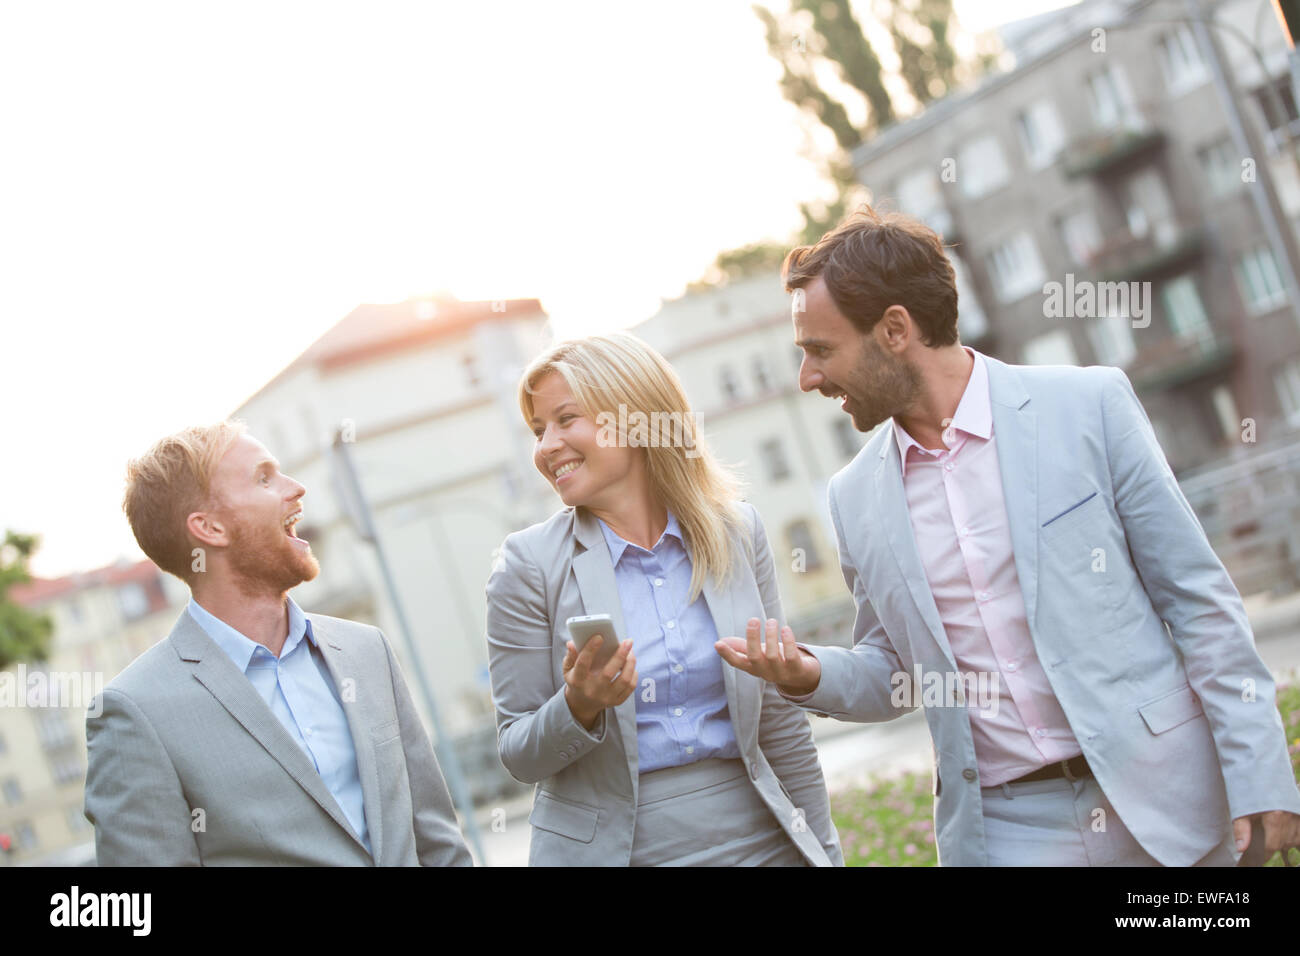 Cheerful businesspeople walking in city - Stock Image